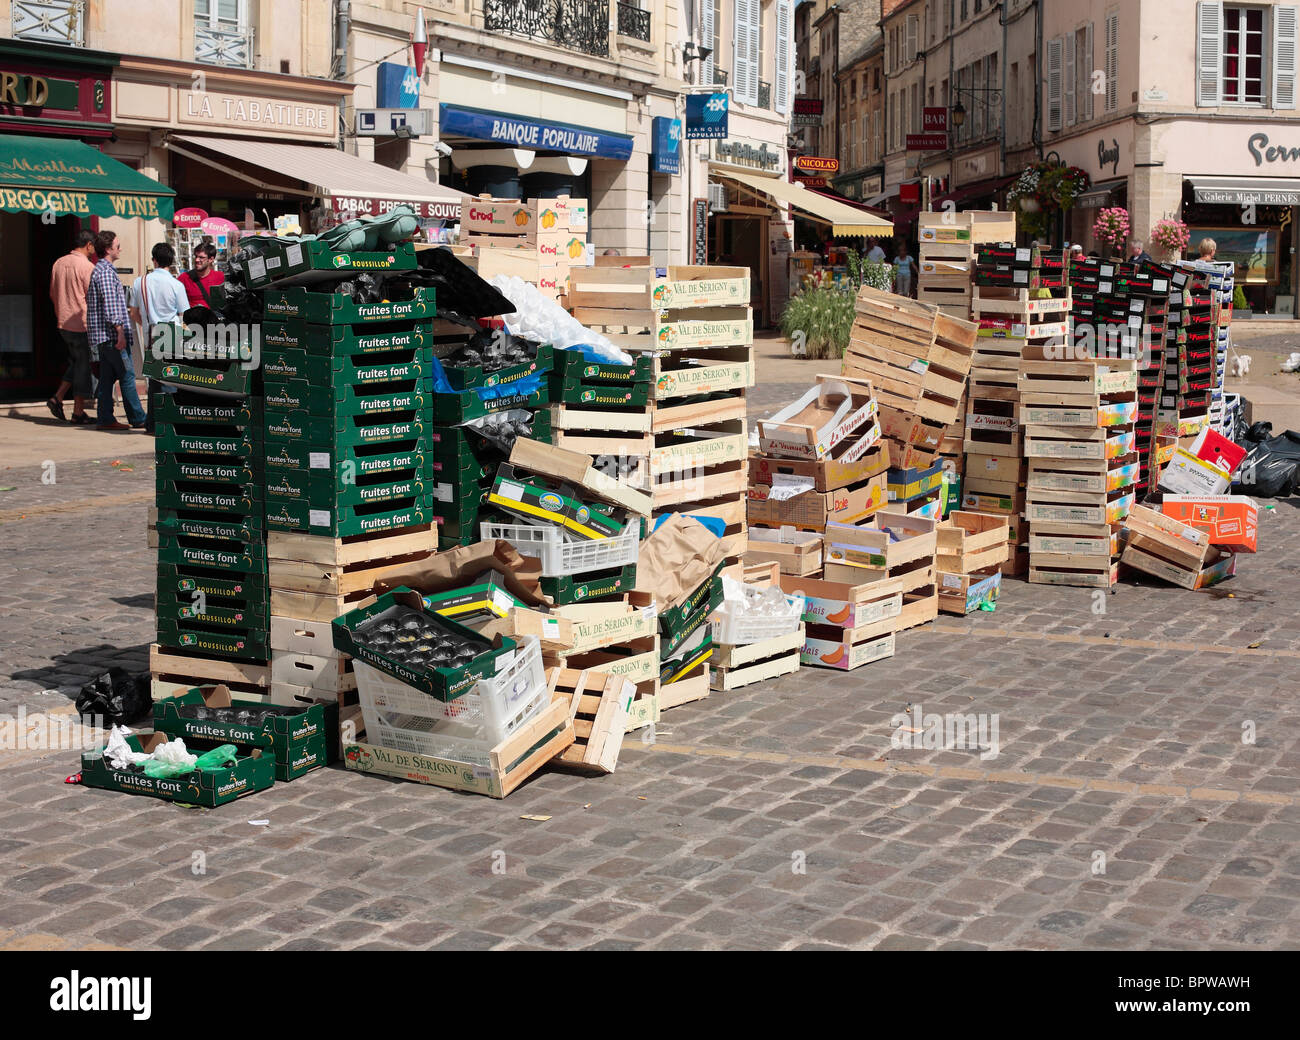 Empty Fruit Boxes and other Rubbish after a Street Market in the Centre of Beaune in Burgundy, France. - Stock Image